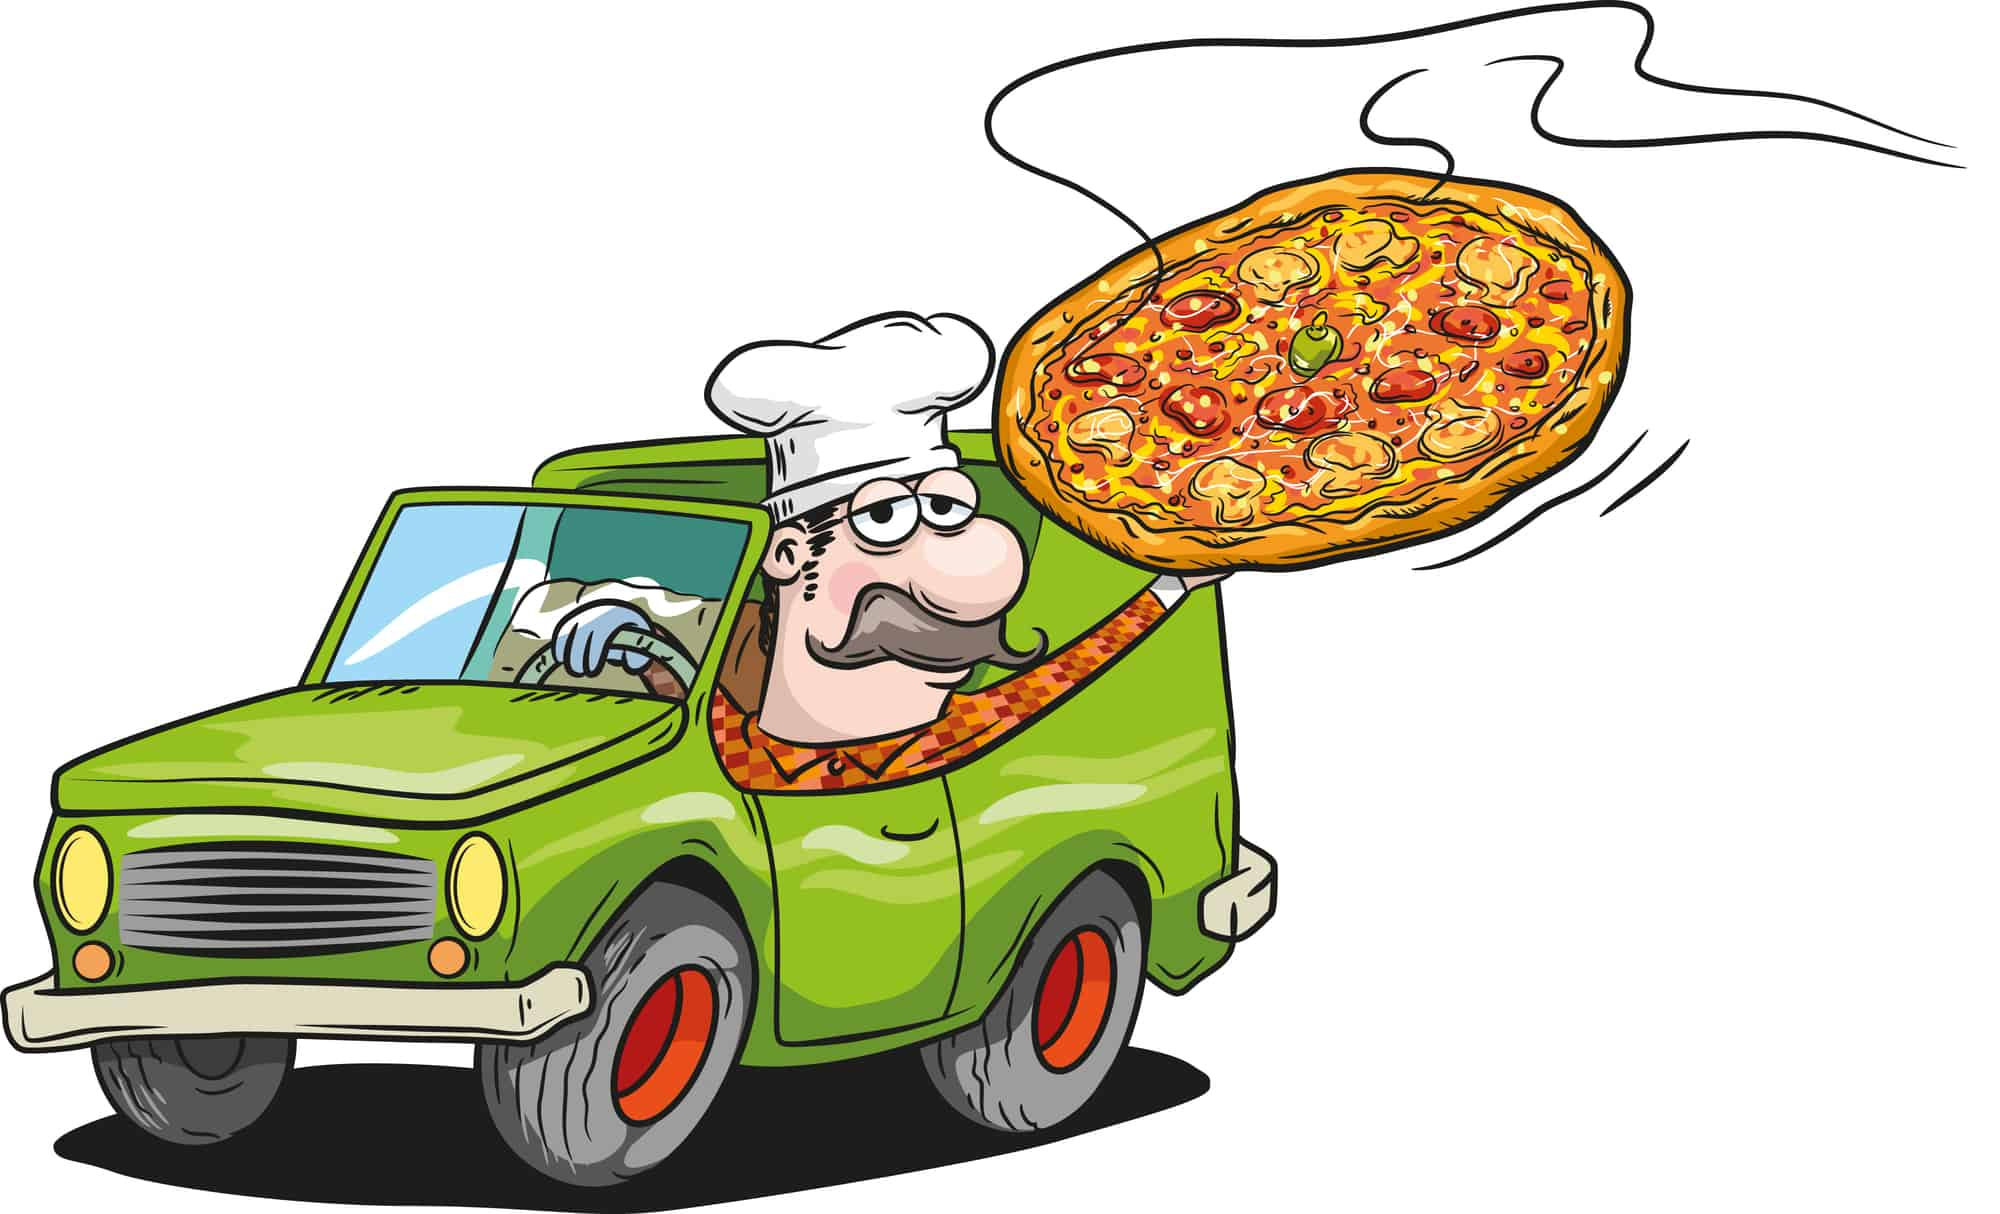 Mind-Blowing Facts About Pizza Delivery (U.S.)